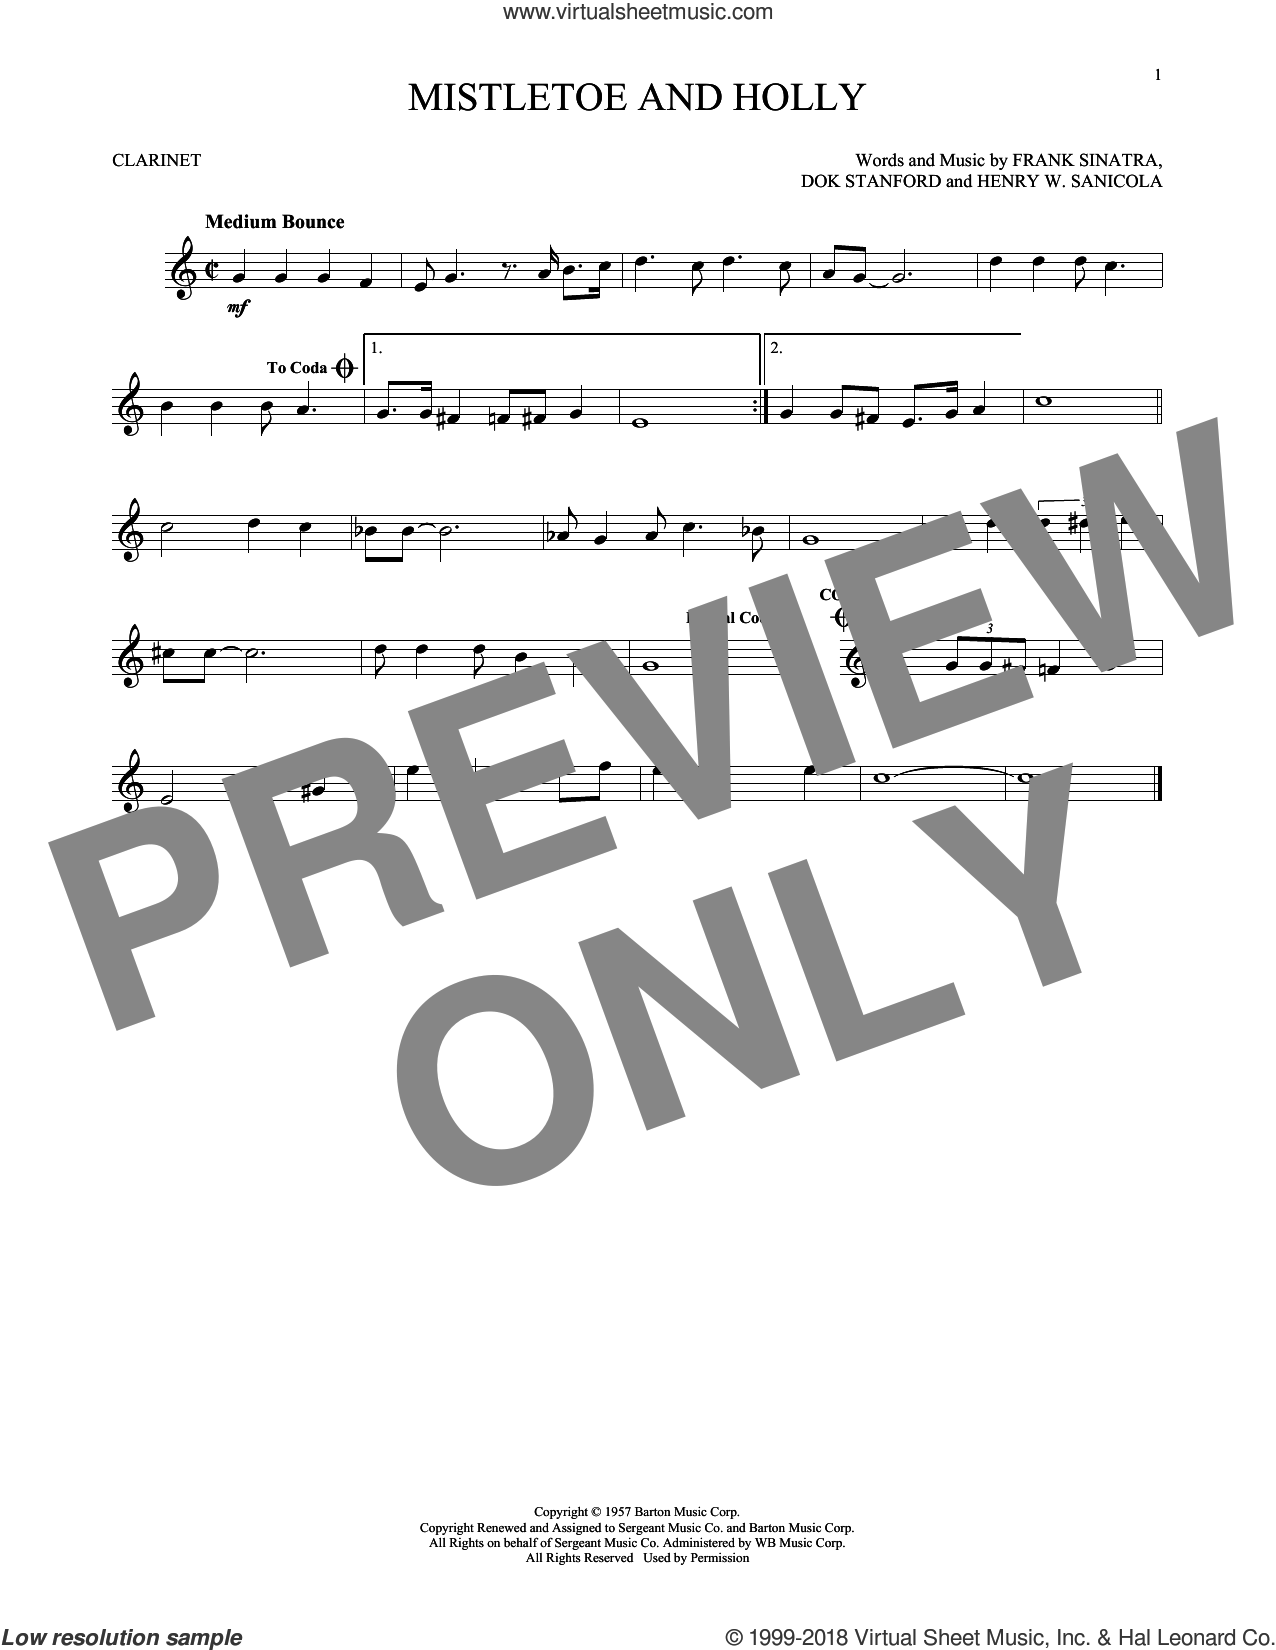 Mistletoe And Holly sheet music for clarinet solo by Frank Sinatra, Dok Stanford and Henry W. Sanicola, intermediate skill level